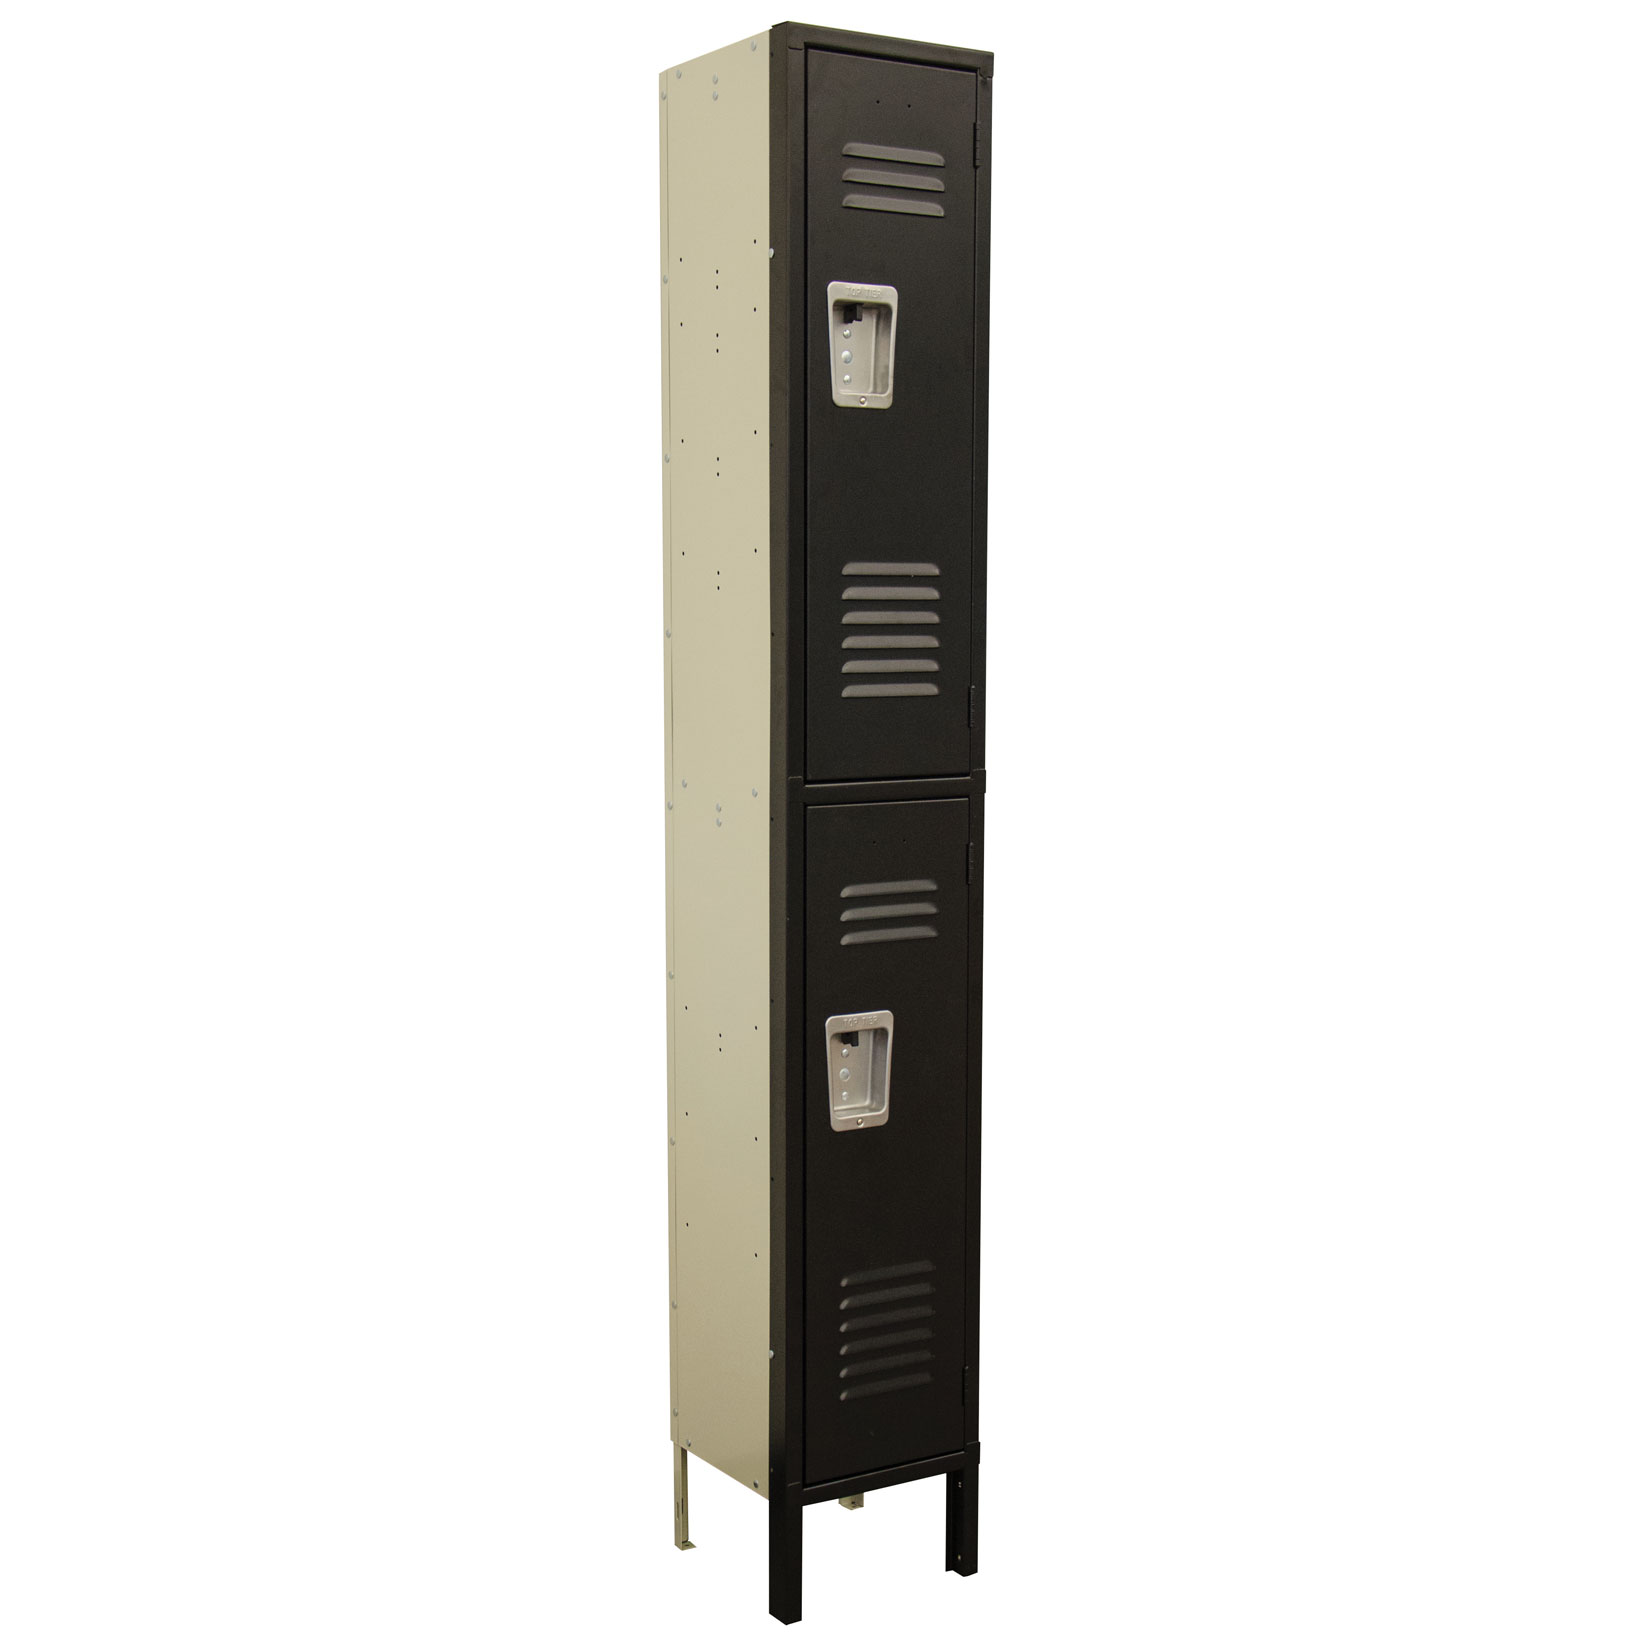 OfficeSource Corridor Lockers 2 Tier 1-Wide Locker